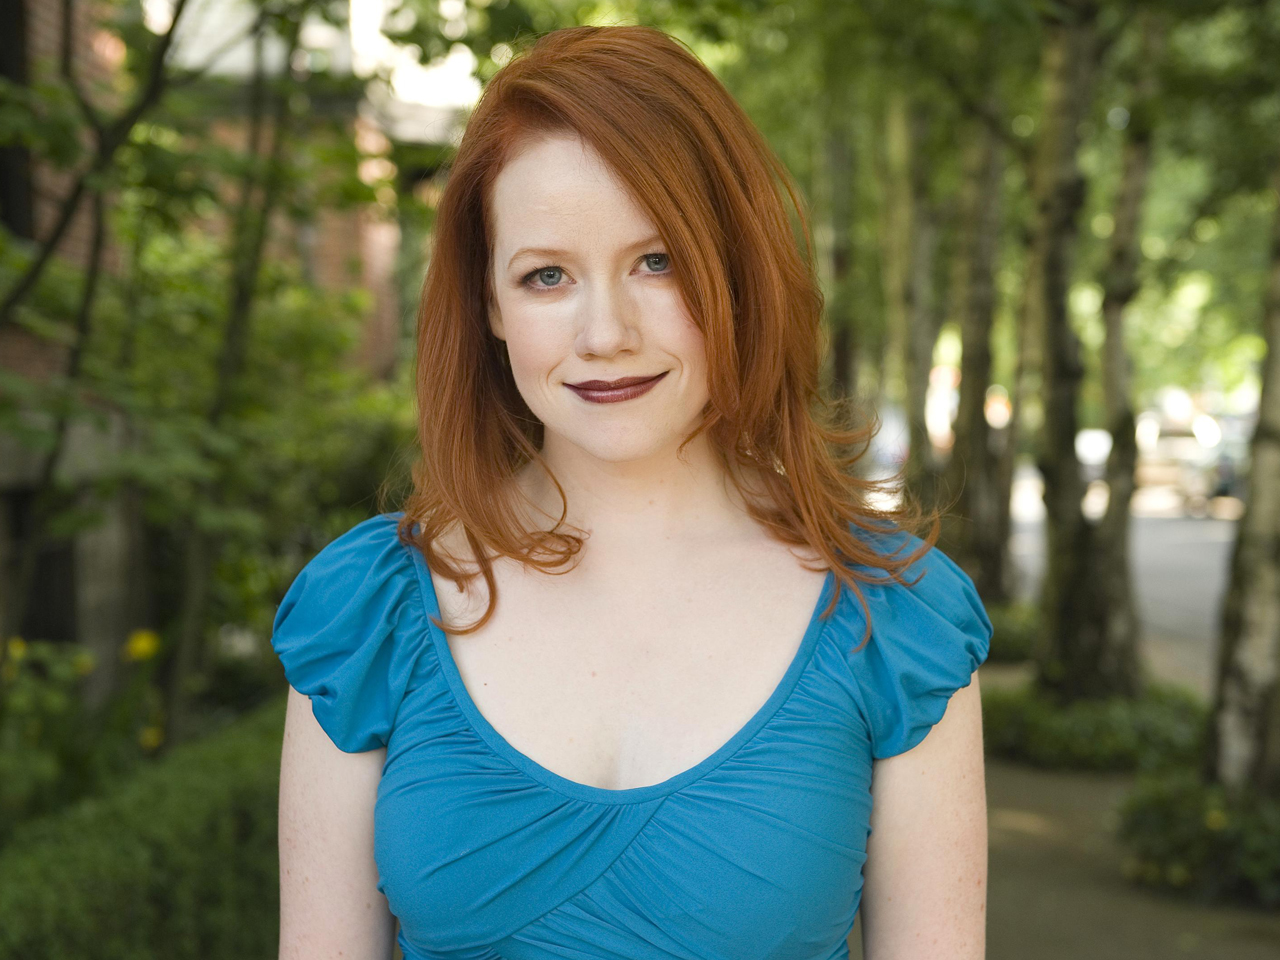 Vampire Academy Author Richelle Mead Weighs In On Film Possible